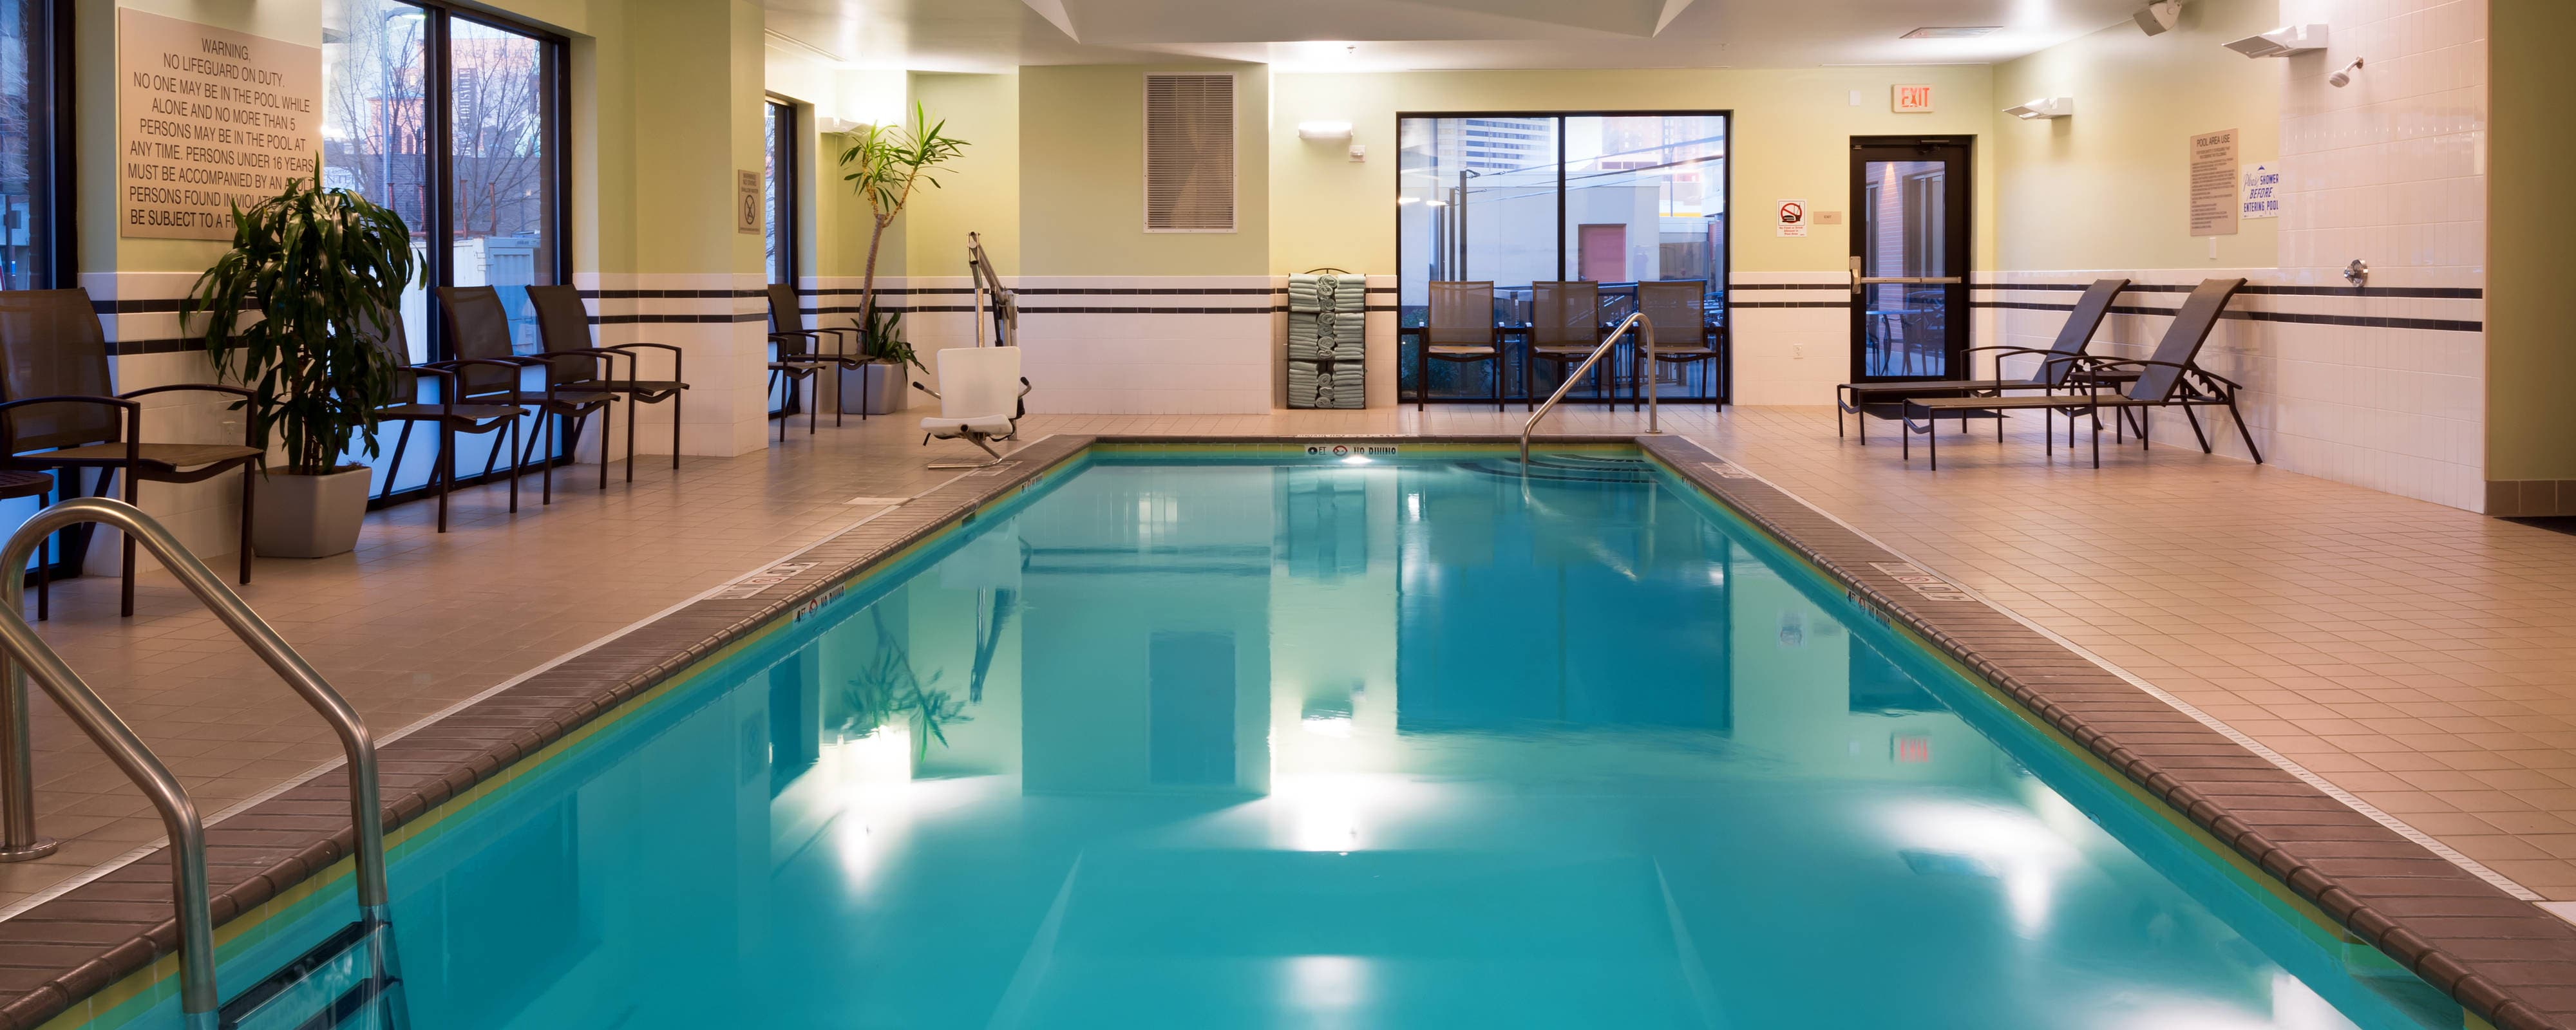 Downtown Louisville Hotel Pool